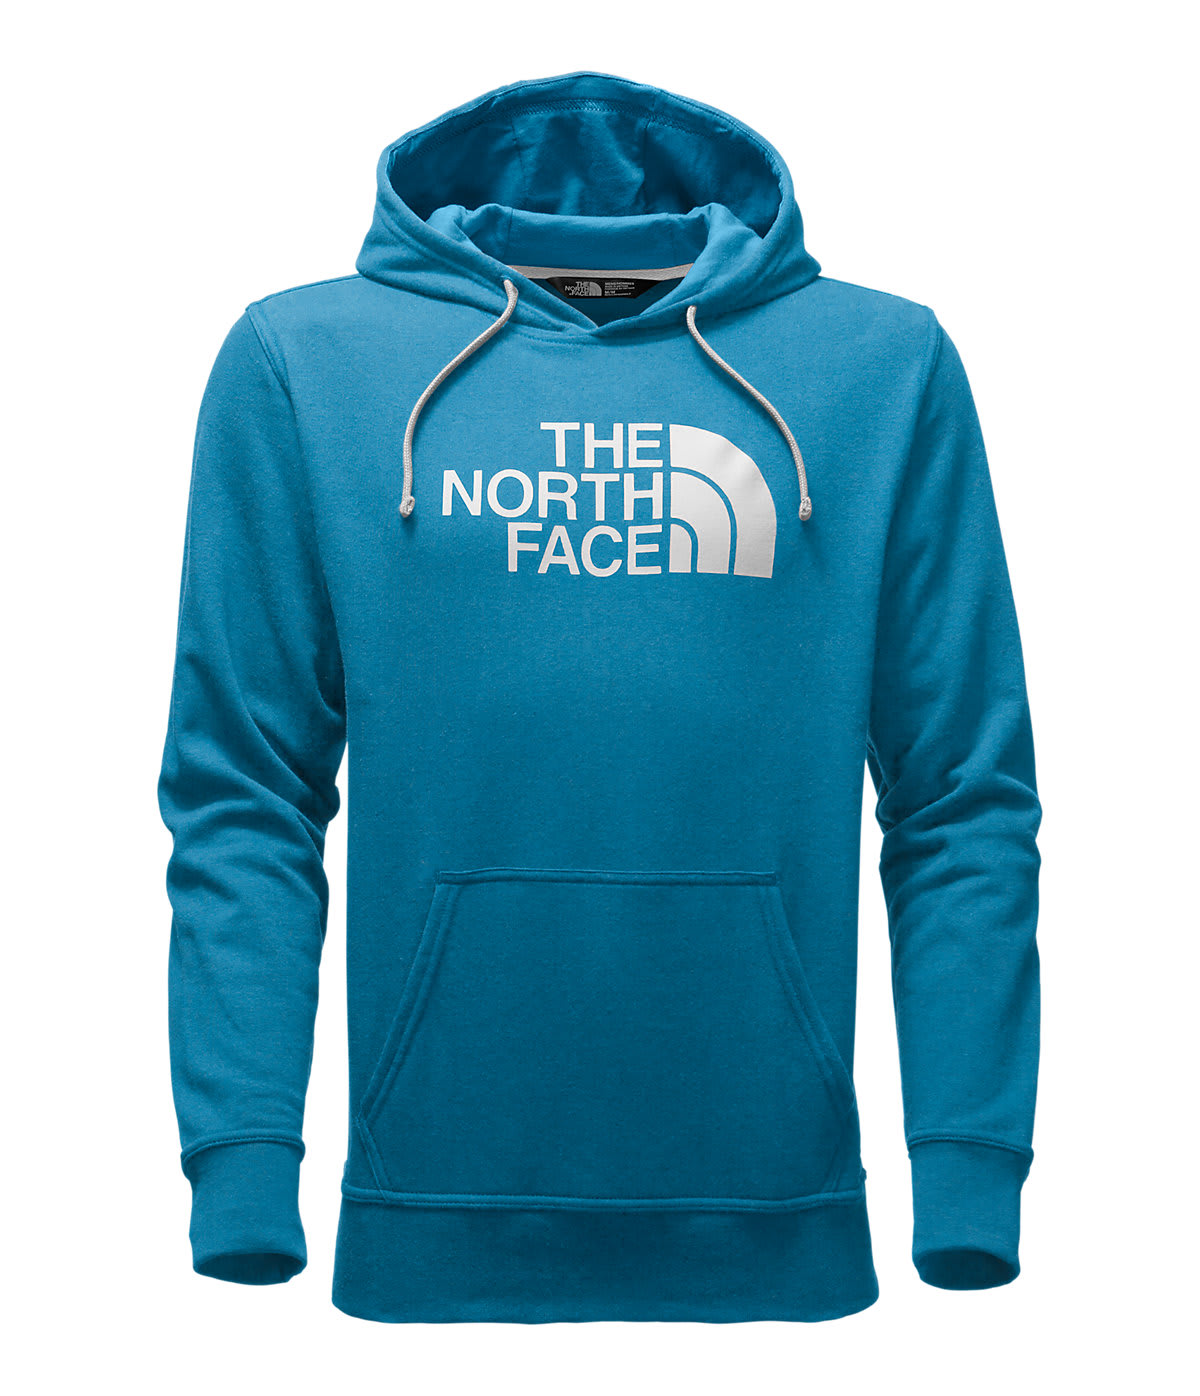 The North Face Half Dome Hoodie nf3hfd04bbtw17zz-the-north-face-hoodies